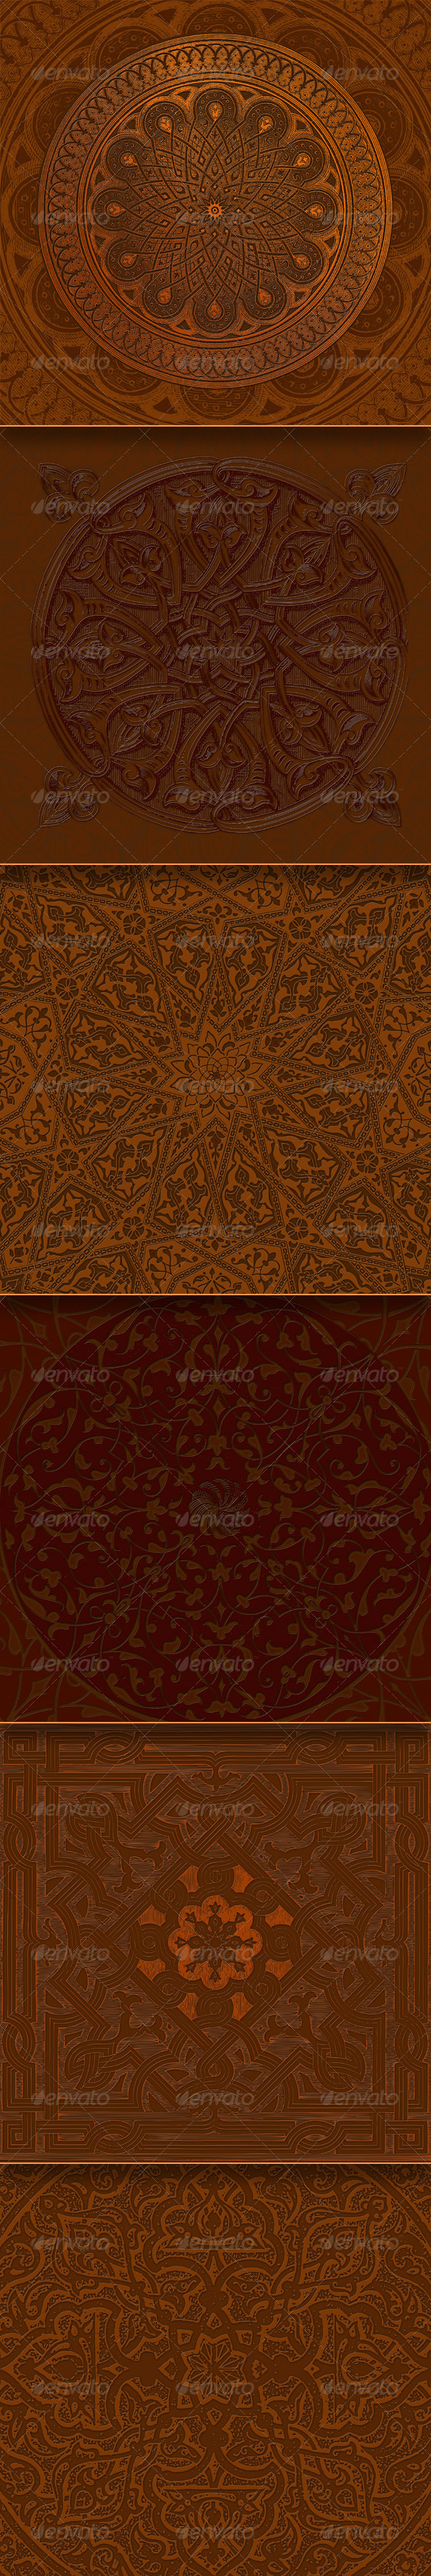 GraphicRiver Decorative Backgrounds 8135149